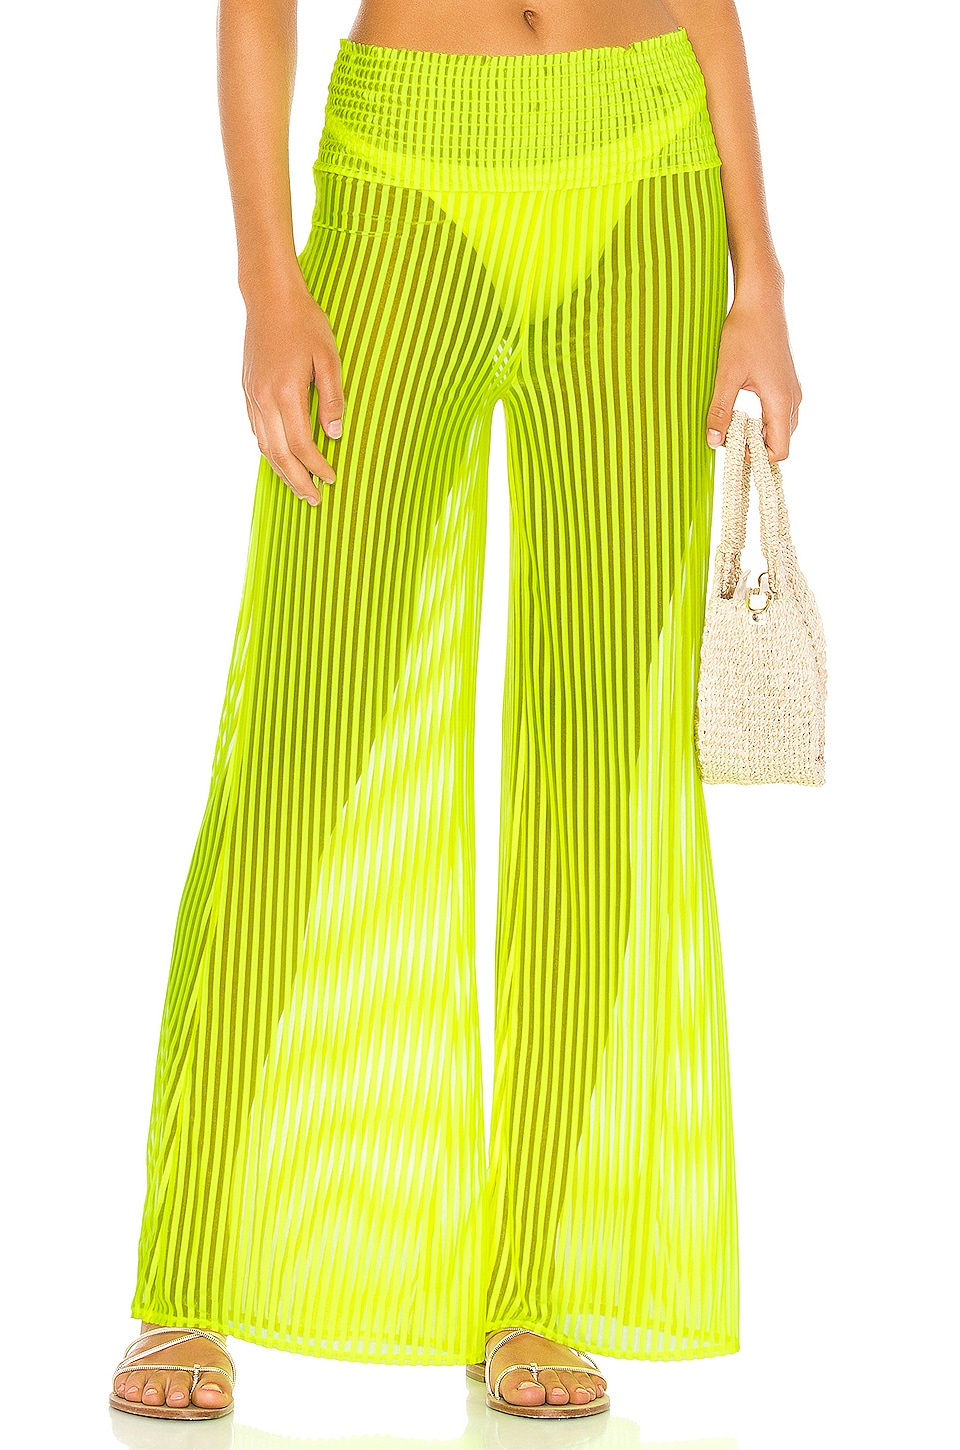 Tularosa Lara Pant in Neon Yellow